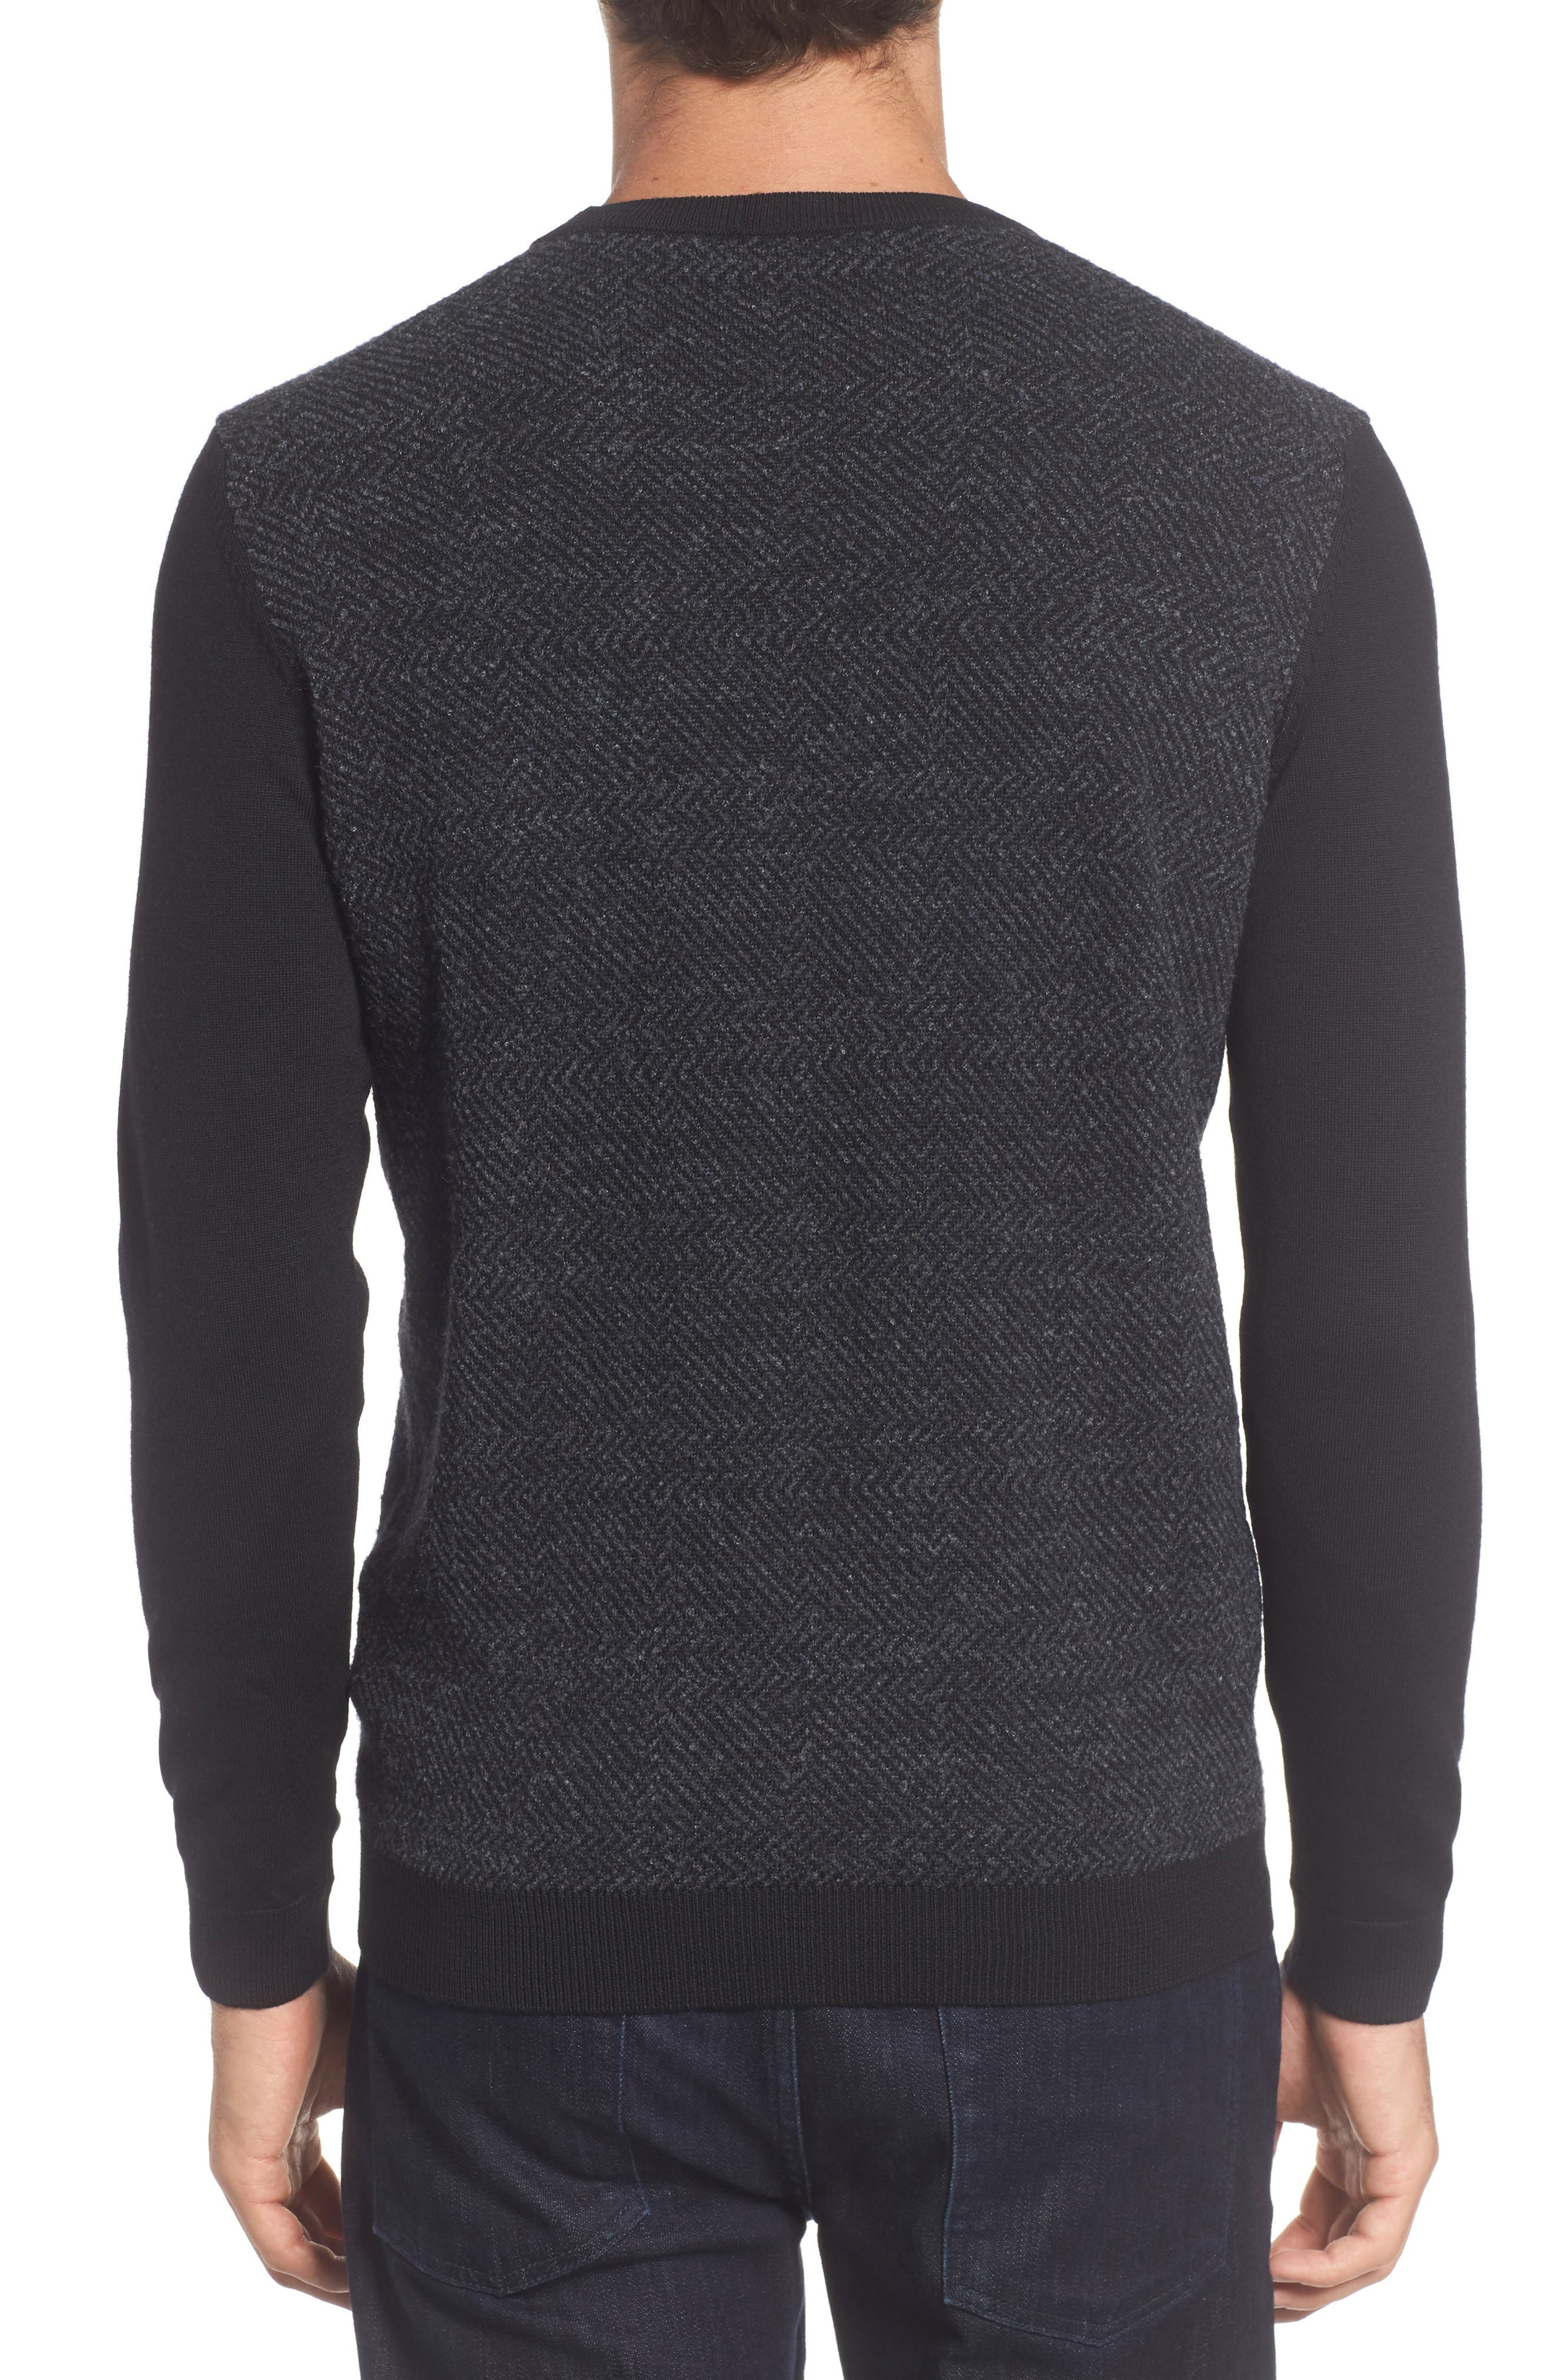 Notto Wool Blend Sweater,                             Alternate thumbnail 2, color,                             Black